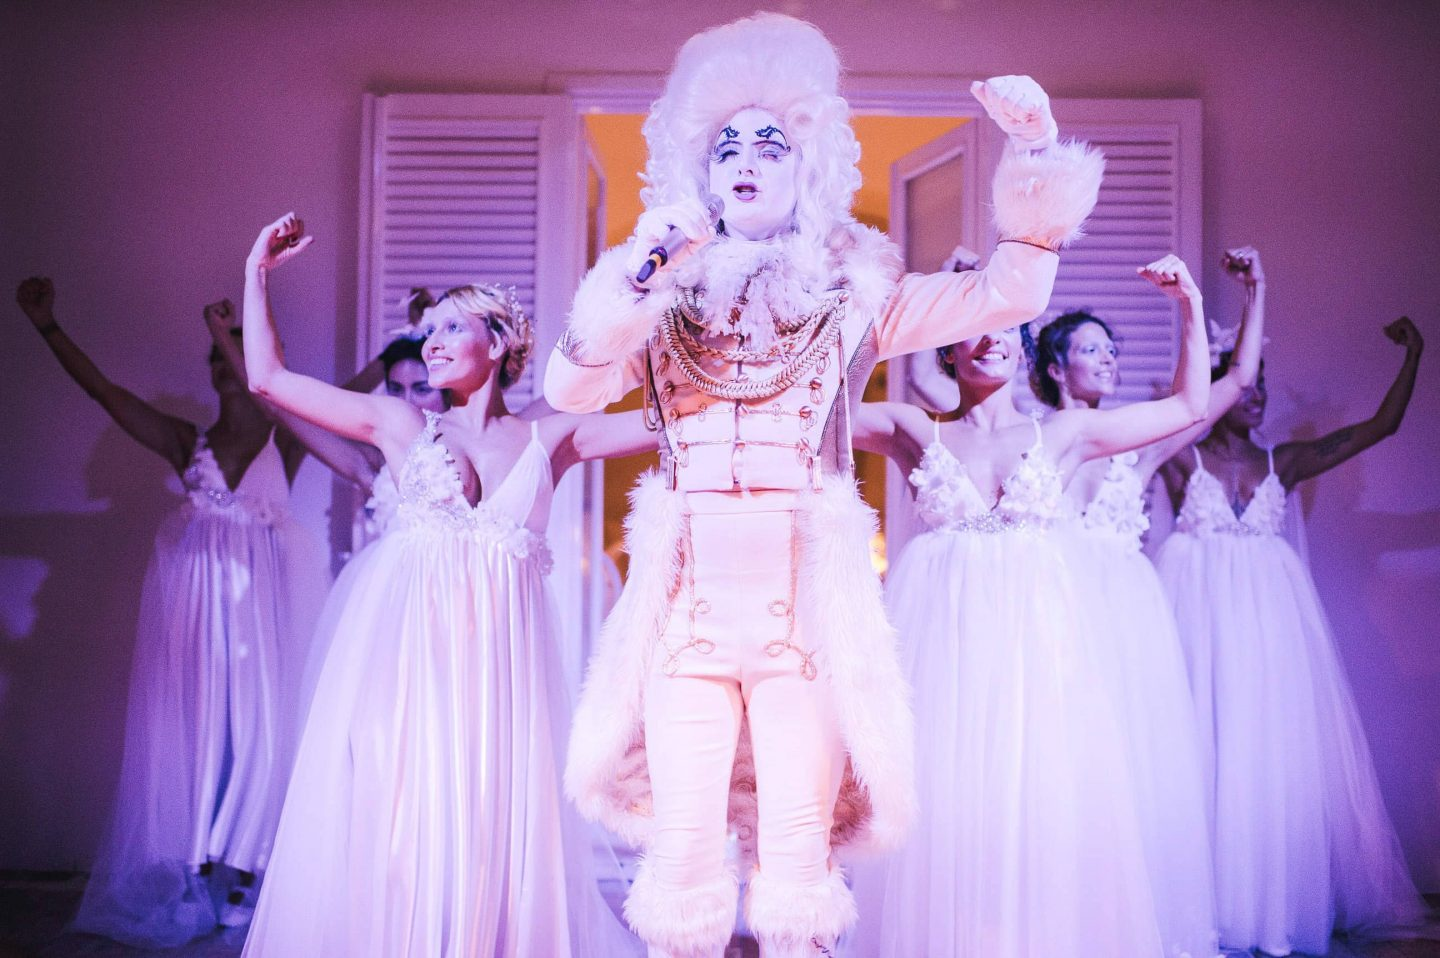 Truffle King Opera Singer performing at the Midsummer Night's Eve-themed white welcome party at this Positano wedding weekend in Villa Tre Ville | Photo by Gianni di Natale